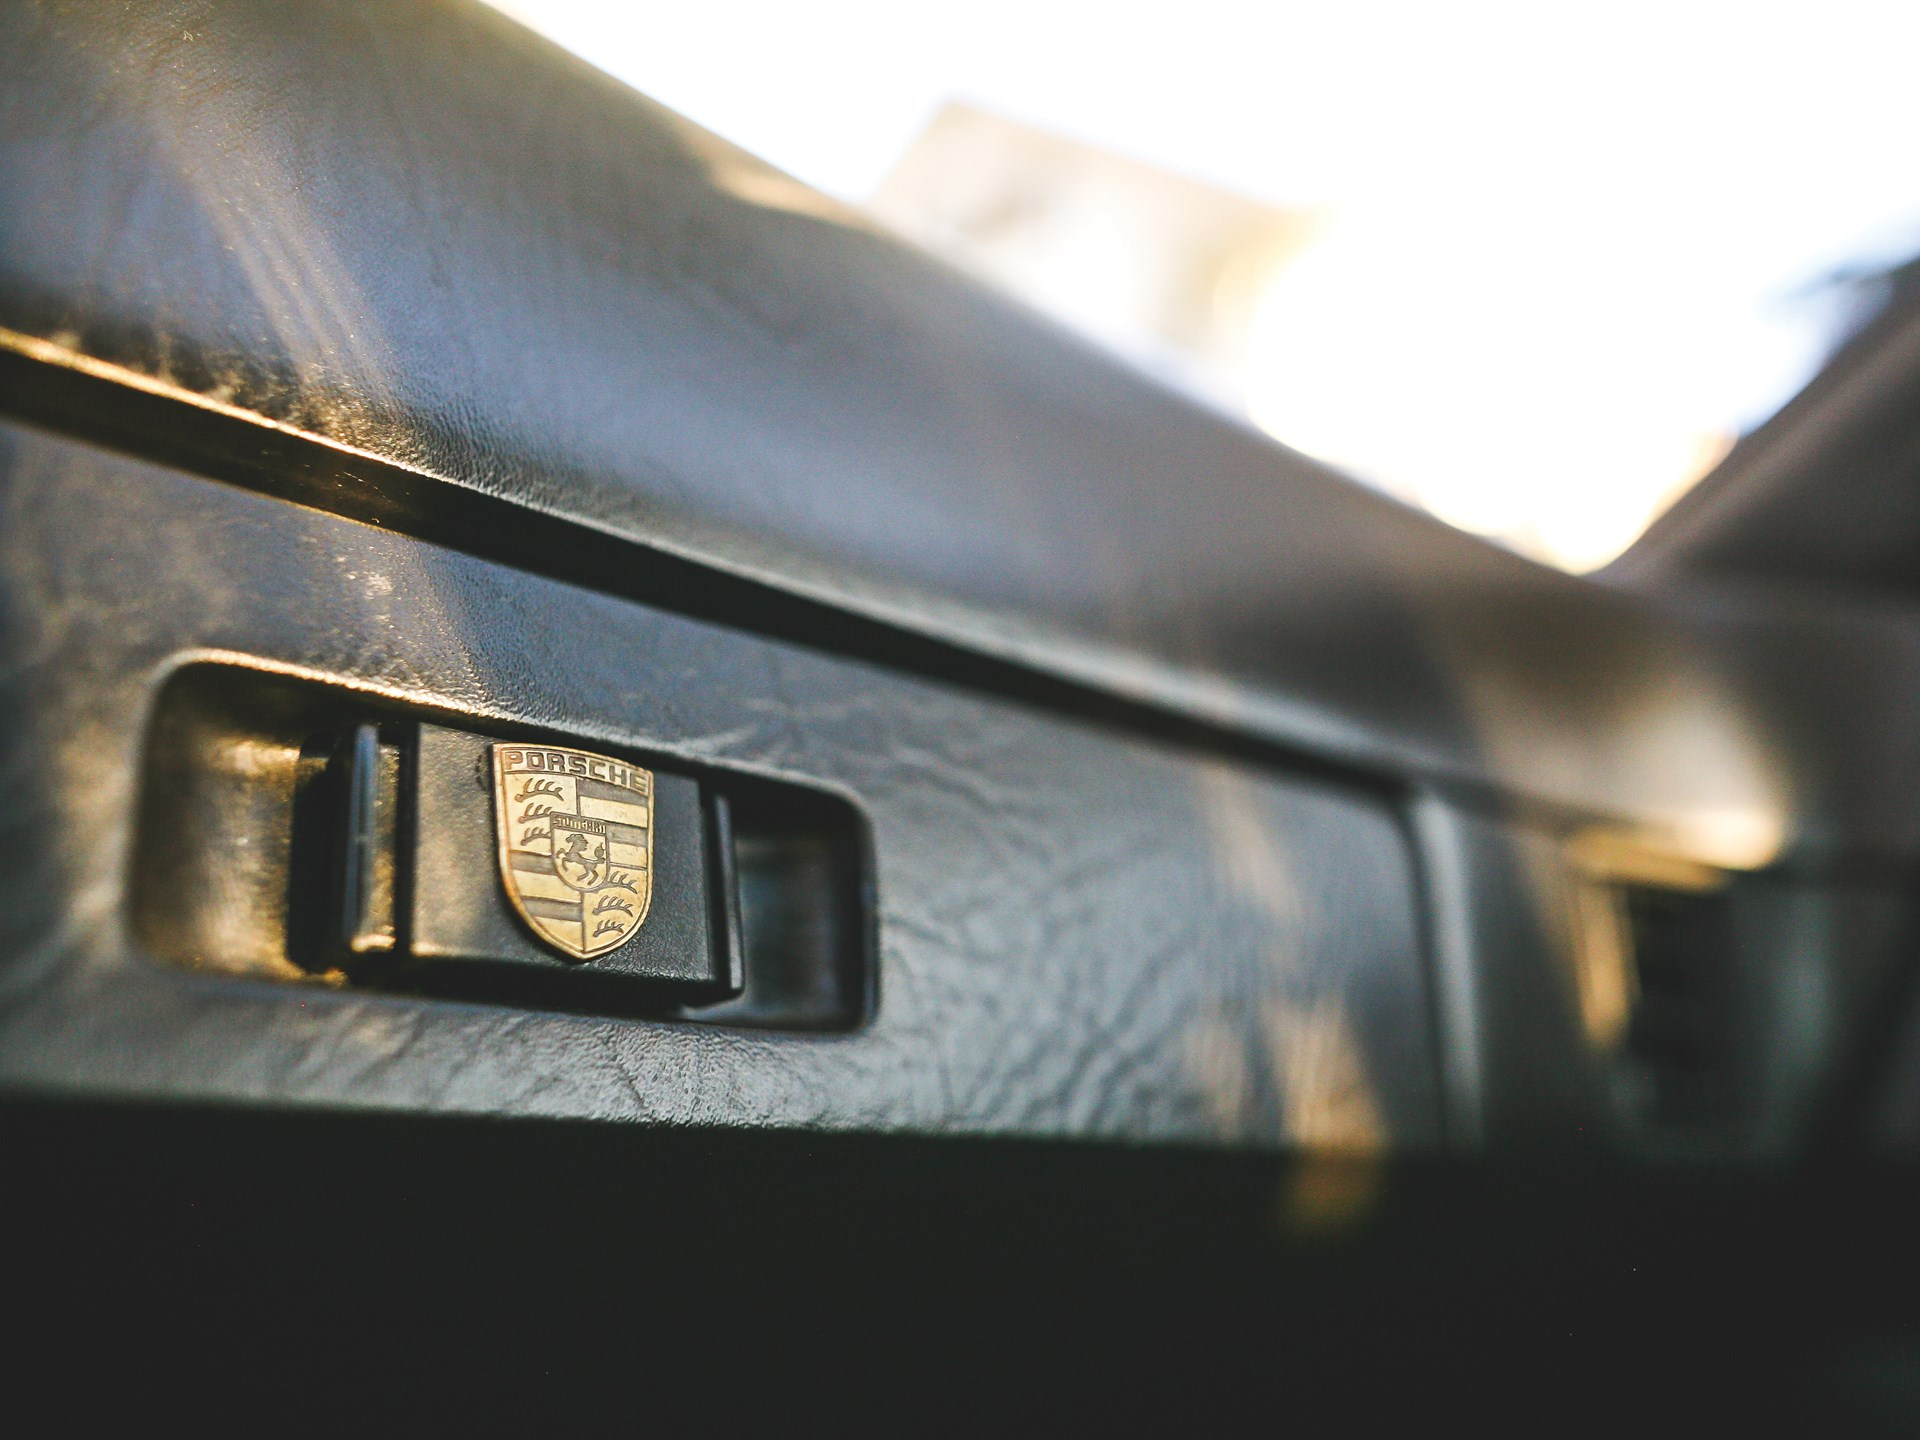 1984 Porsche 944 glovebox